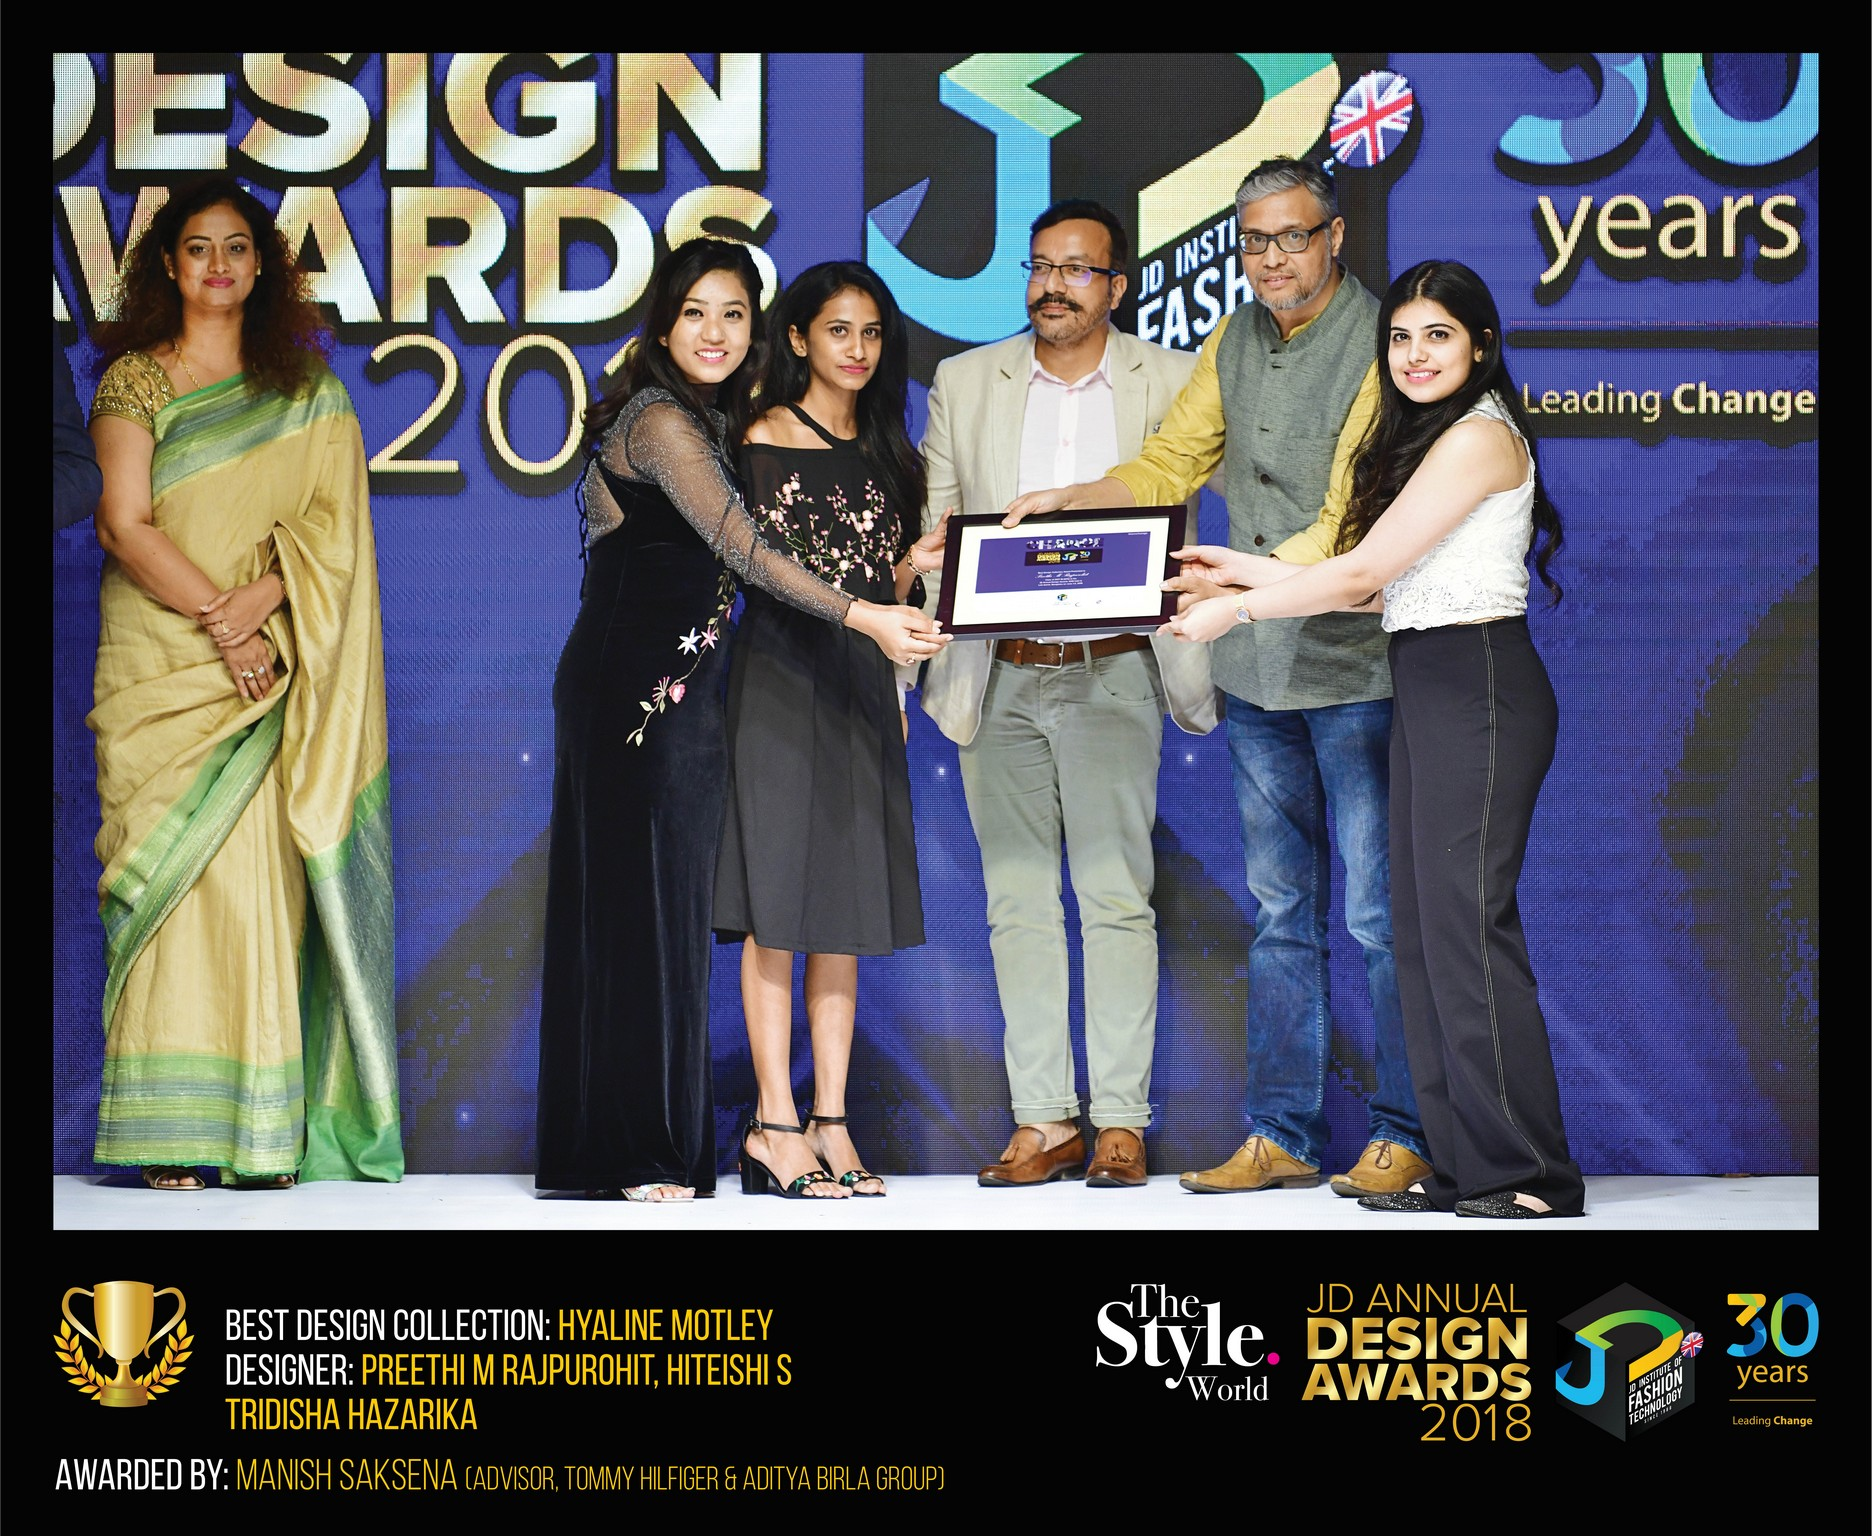 Hyaline Motley – Change – JD Annual Design Awards 2018 | Designer: Preethi, Tridisha and Heitishi from DFD March 2017 | Photography : Jerin Nath (@jerin_nath) hyaline motley - 28 - Hyaline Motley – Change – JD Annual Design Awards 2018